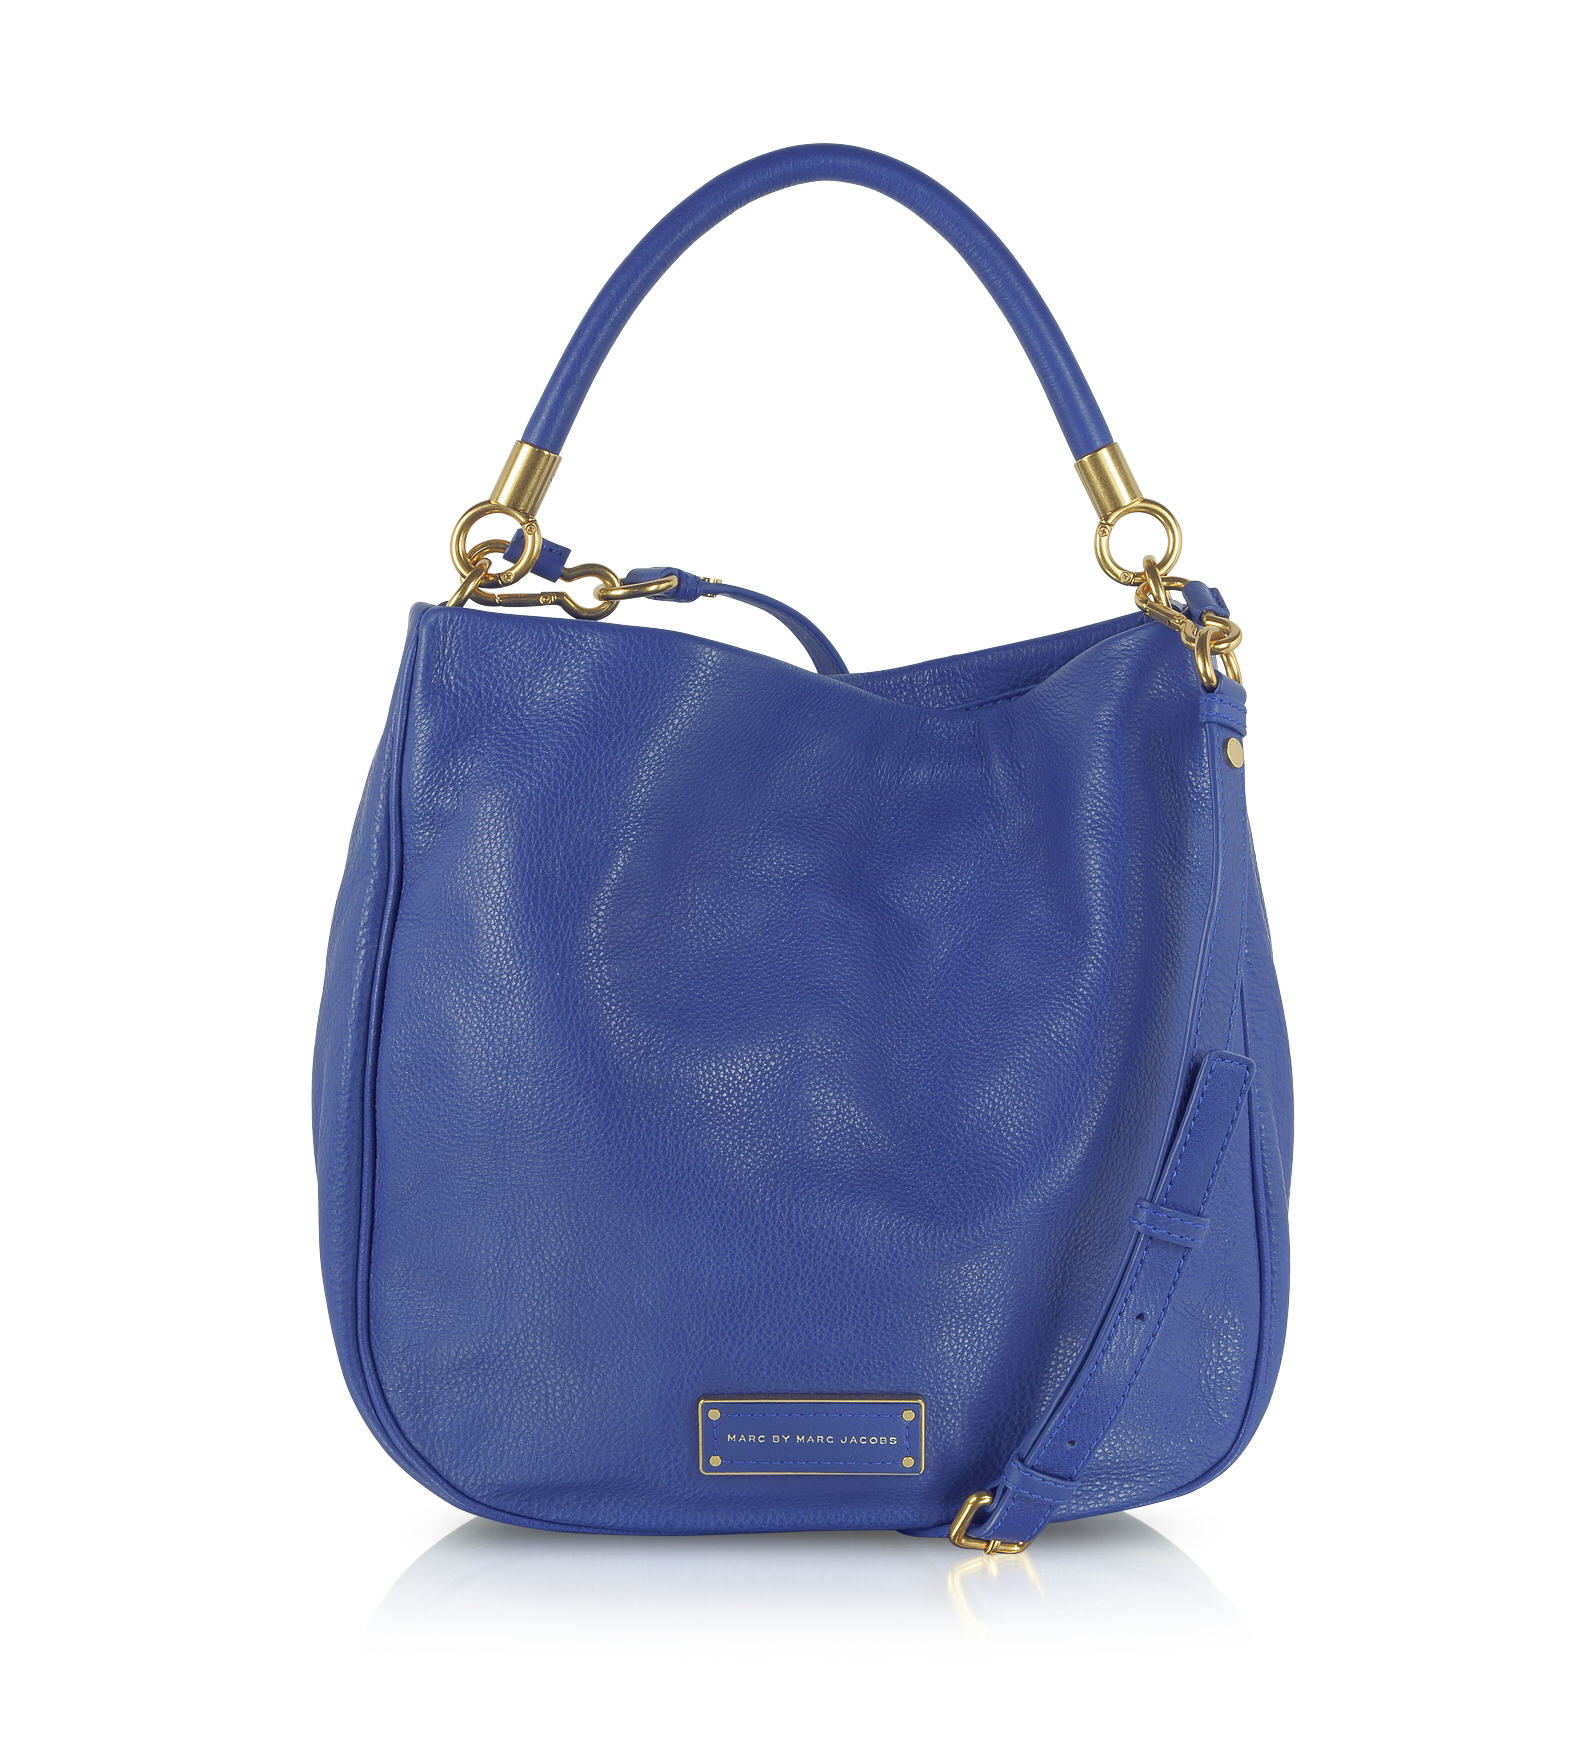 Forzieri - Too Hot To Handle Bauhaus Sac en cuir bleu Marc by Marc Jacobs 89bd851921e3